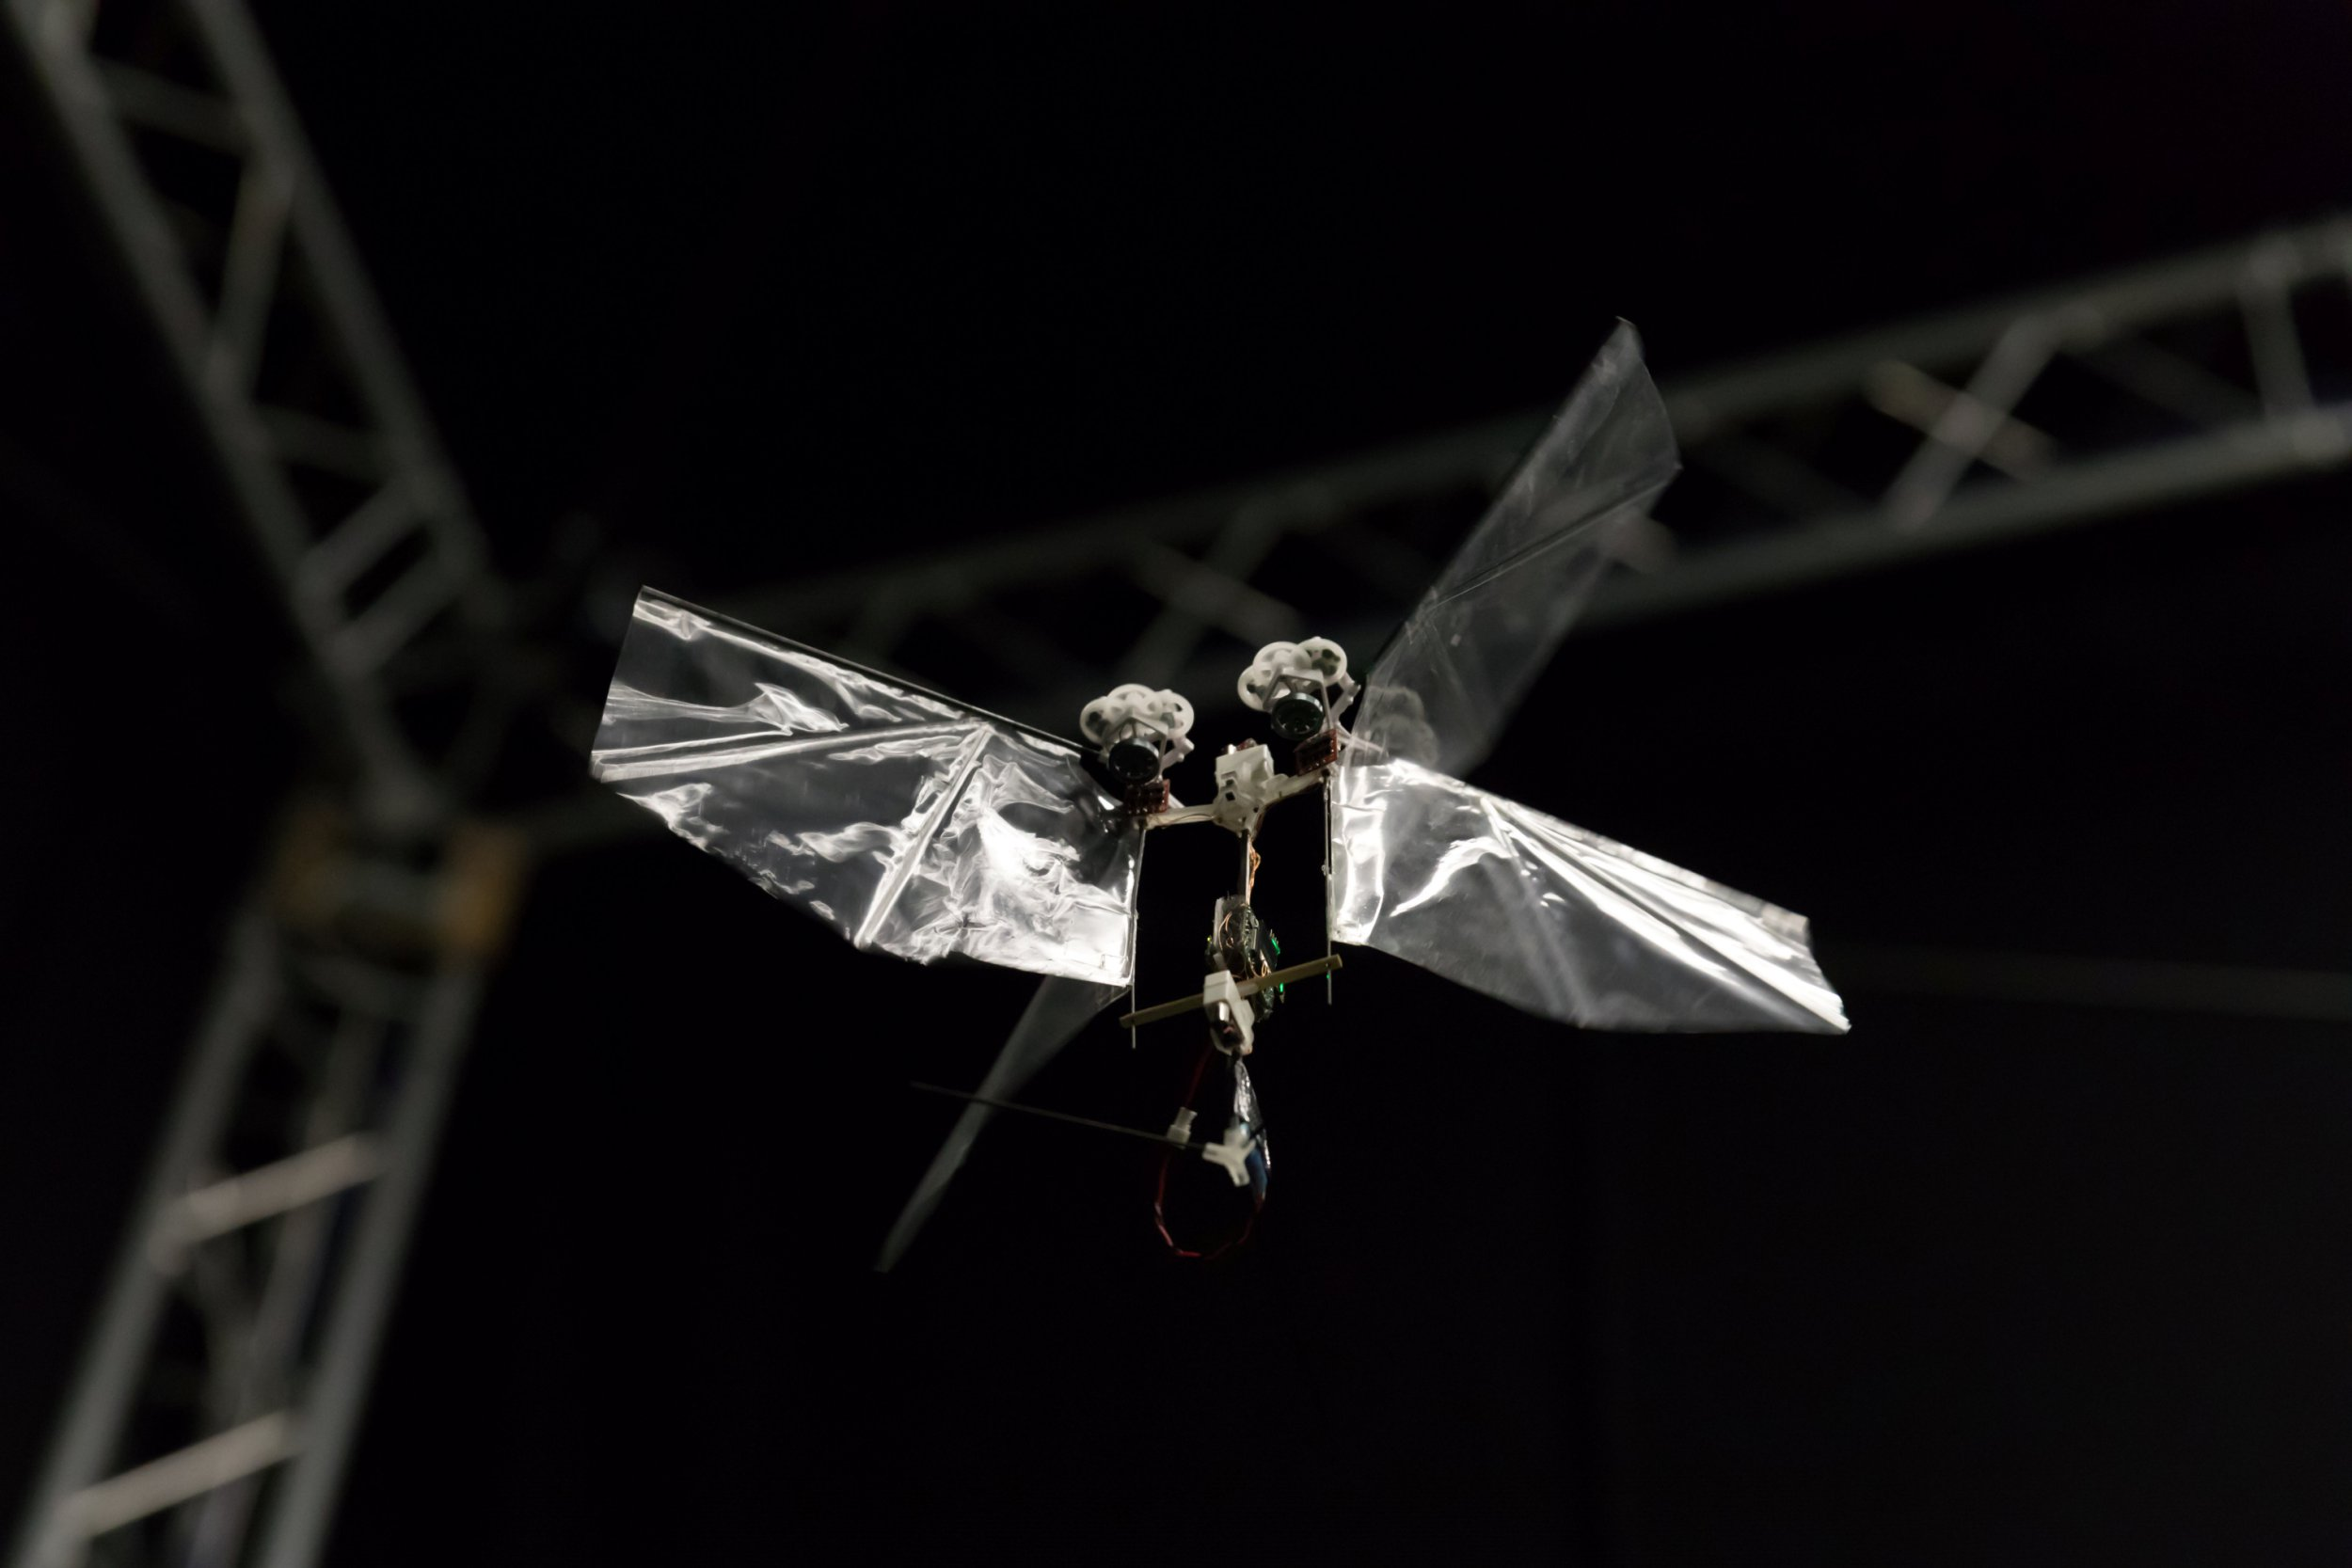 'Aggressive' robot insect with flapping wings modeled on a fruit fly unleashed